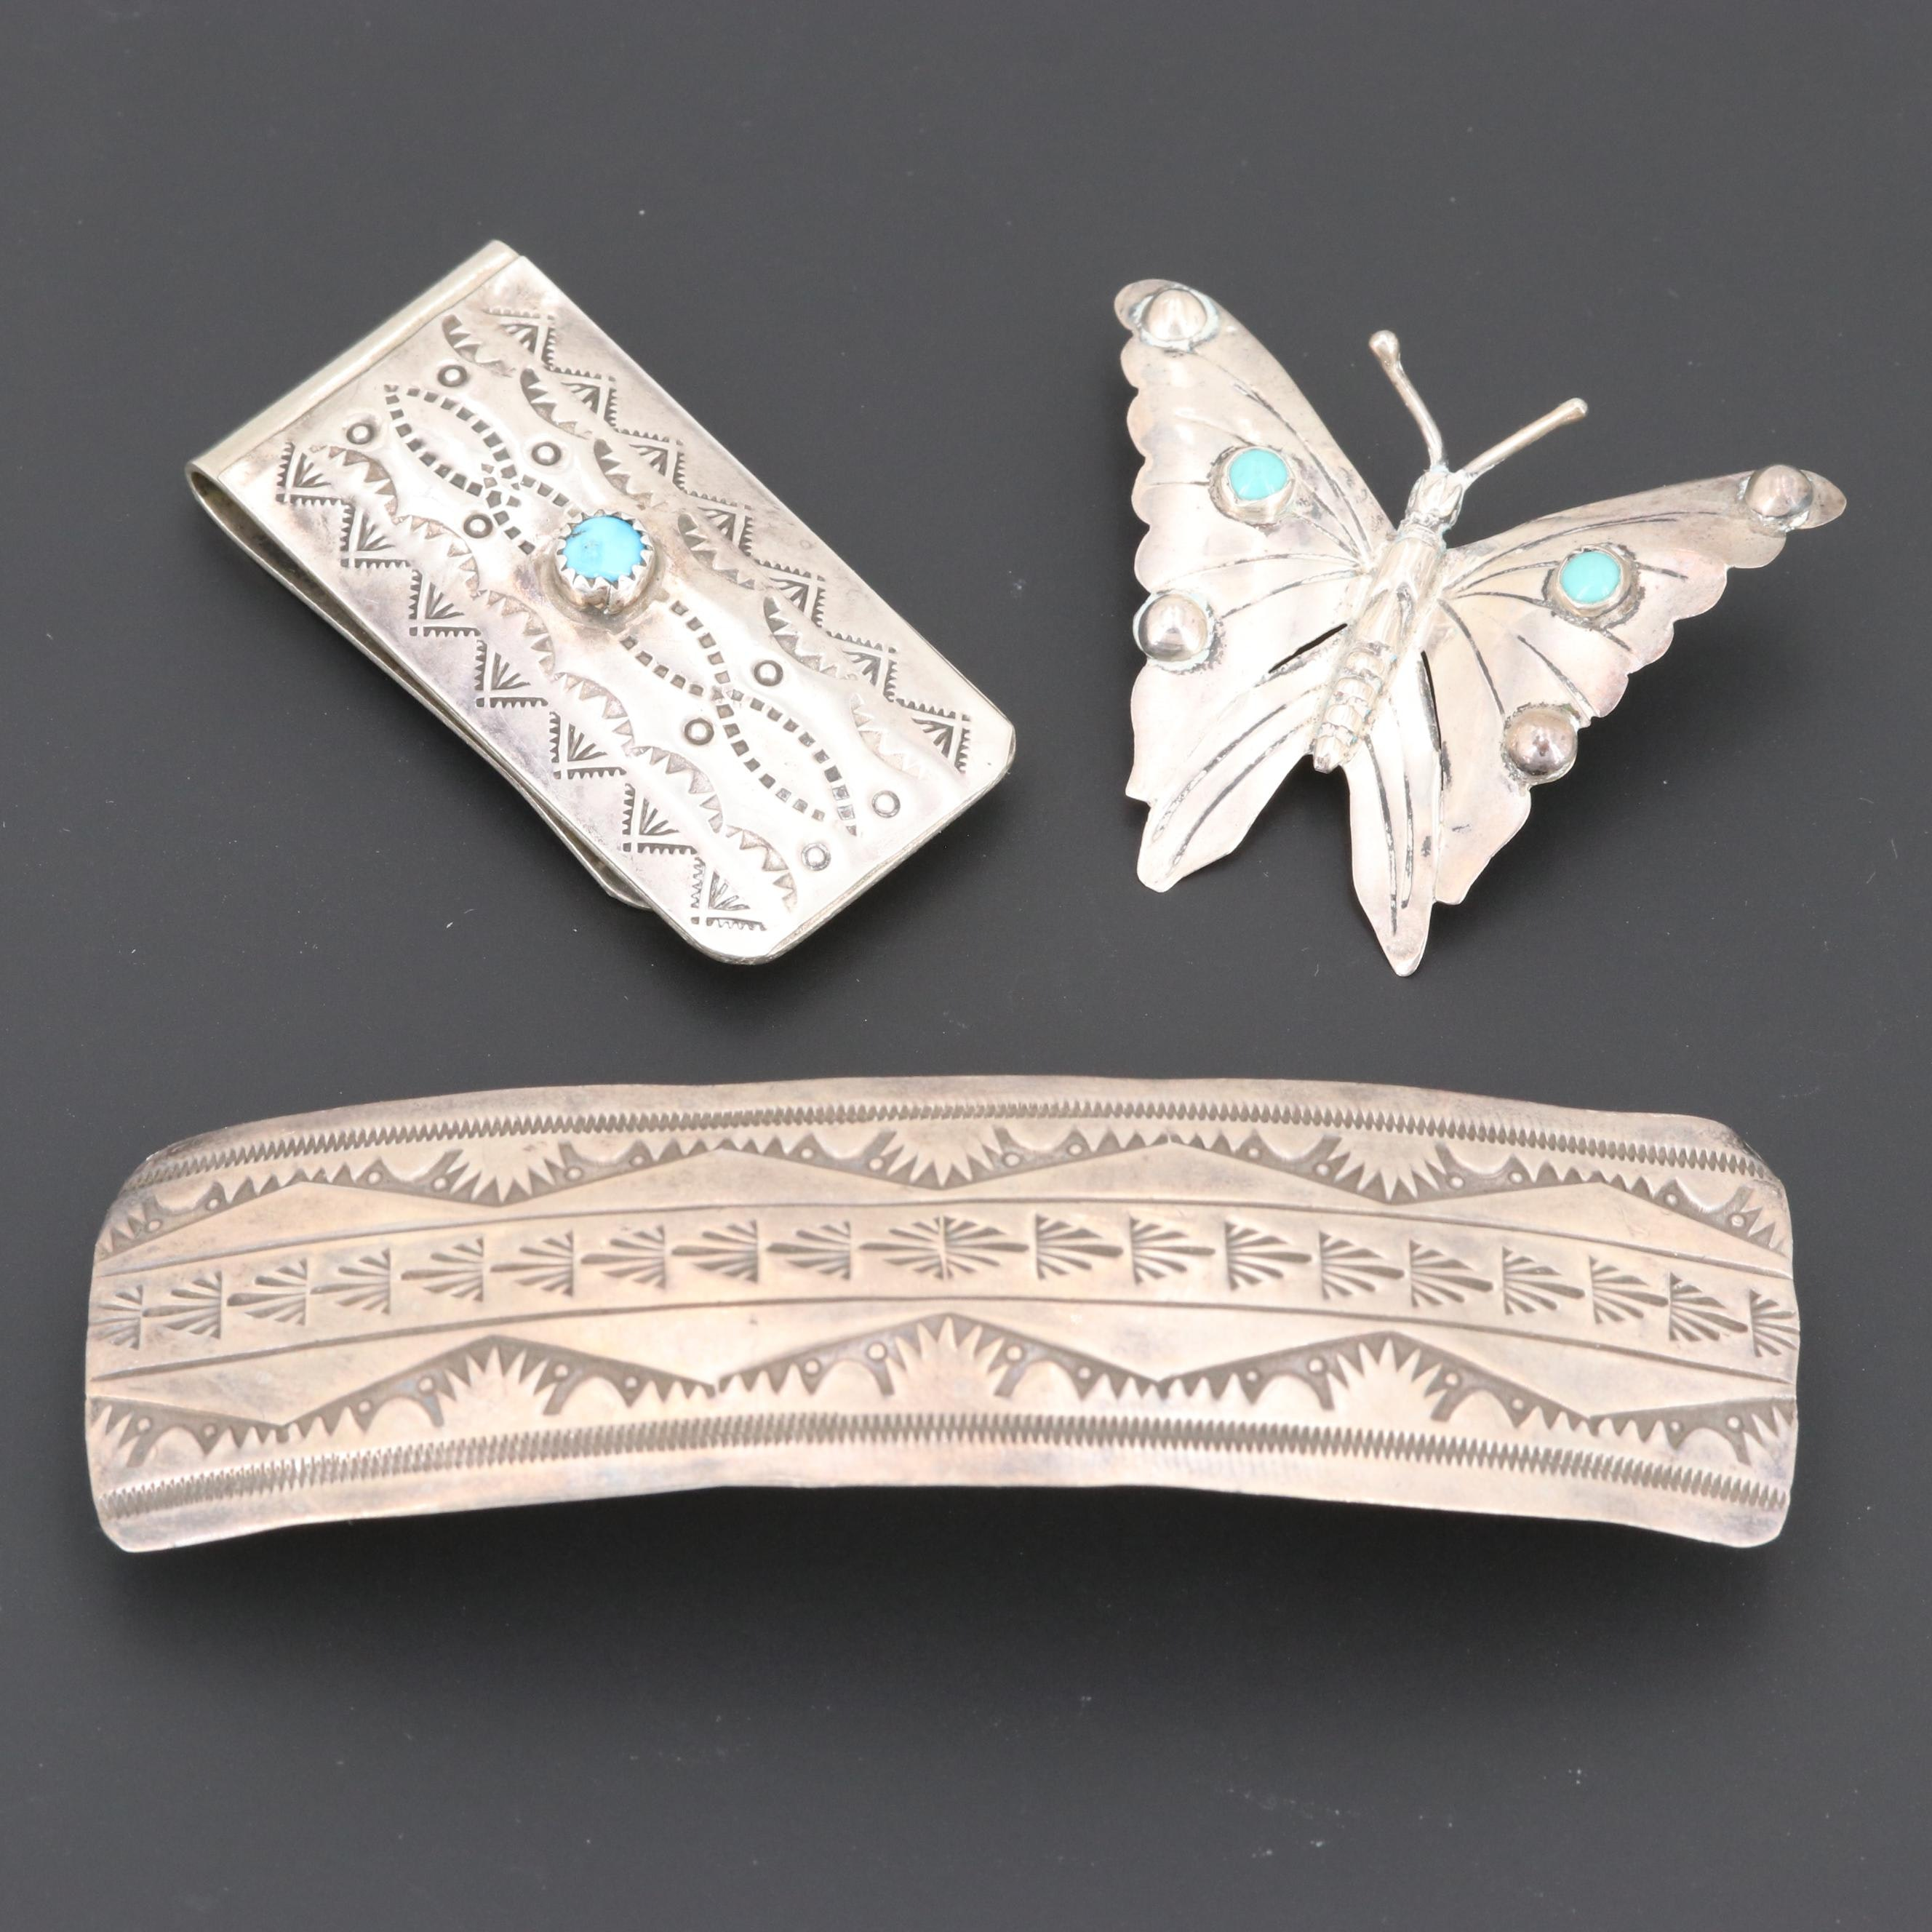 Southwestern Style Sterling Silver Jewelry, Hair and Money Clips with Turquoise